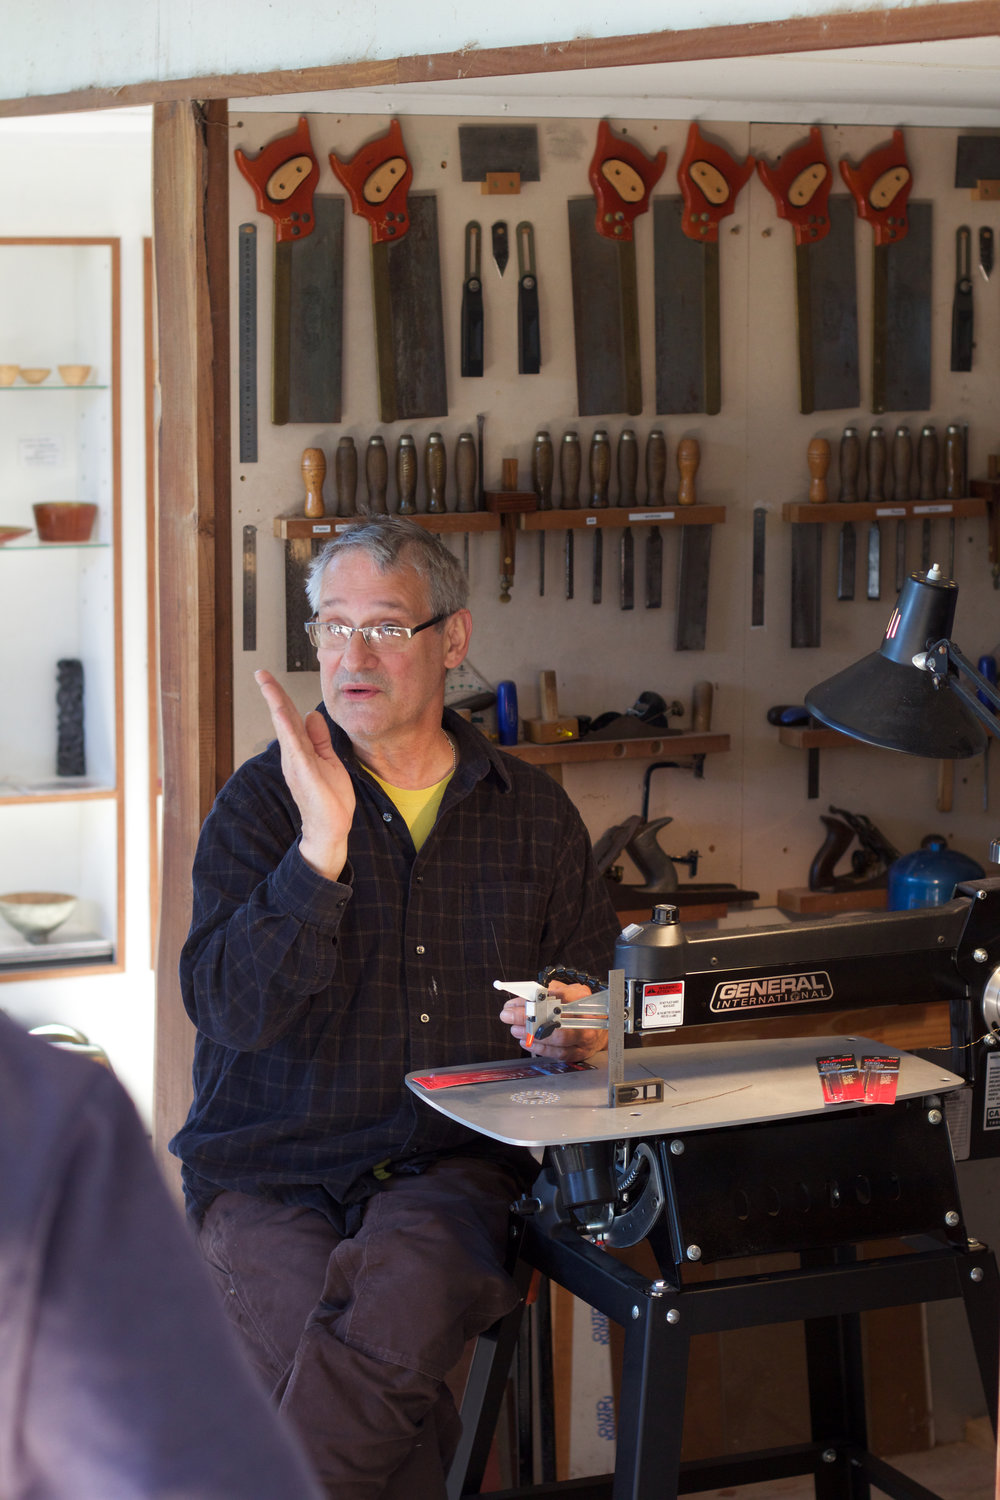 Brian Reid leading a woodworking class in the Cooroora Institute teaching studio